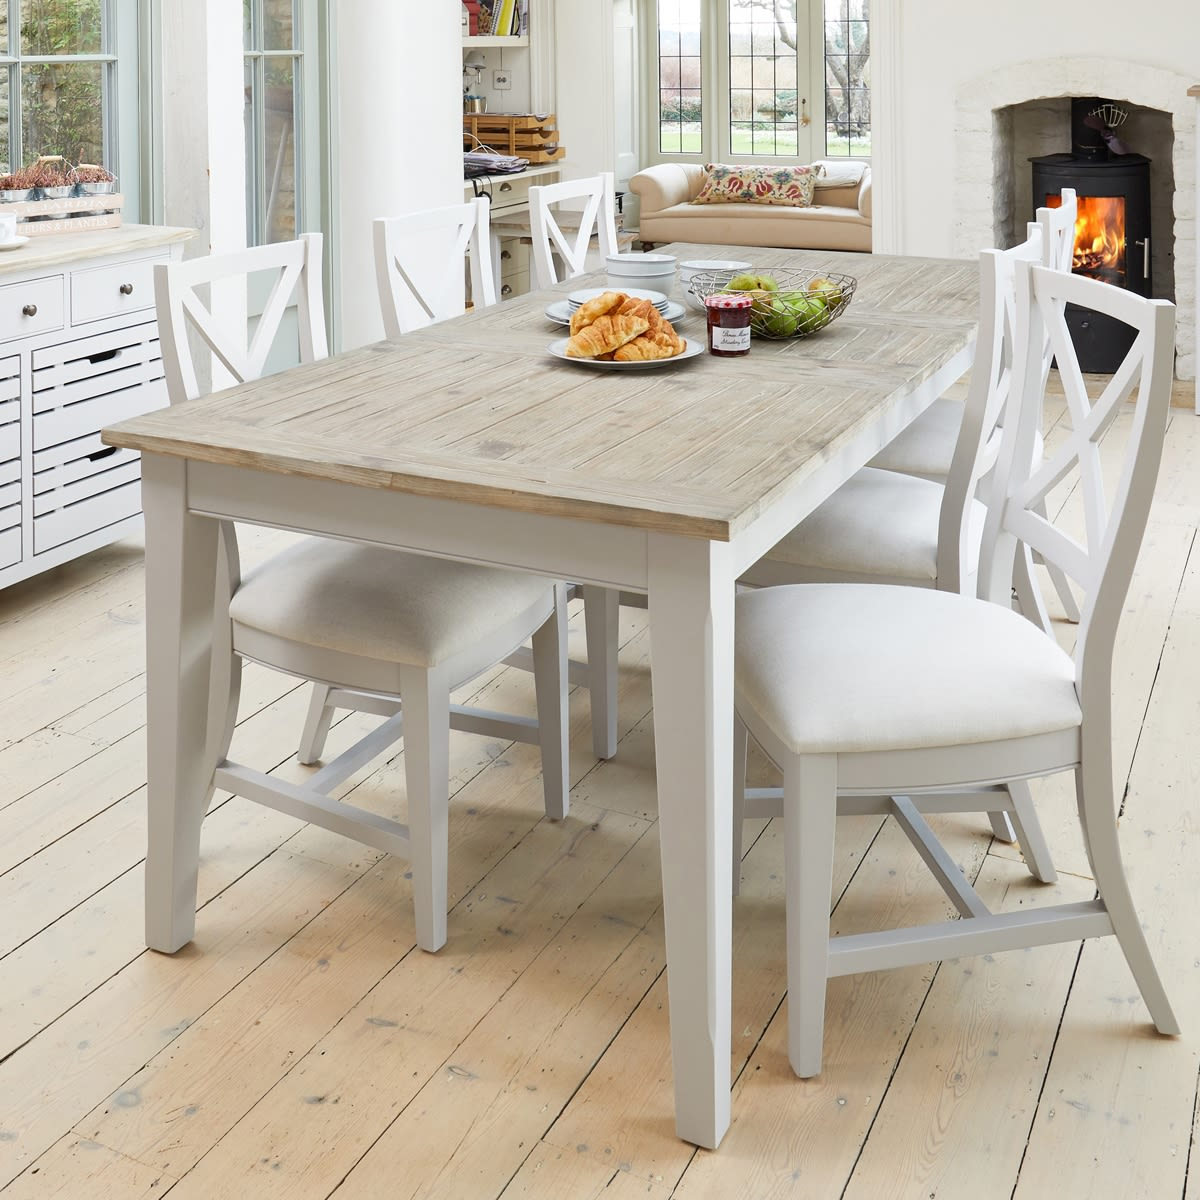 26 Big Small Dining Room Sets With Bench Seating: Signature Grey Extending Dining Table With Six Chairs Was